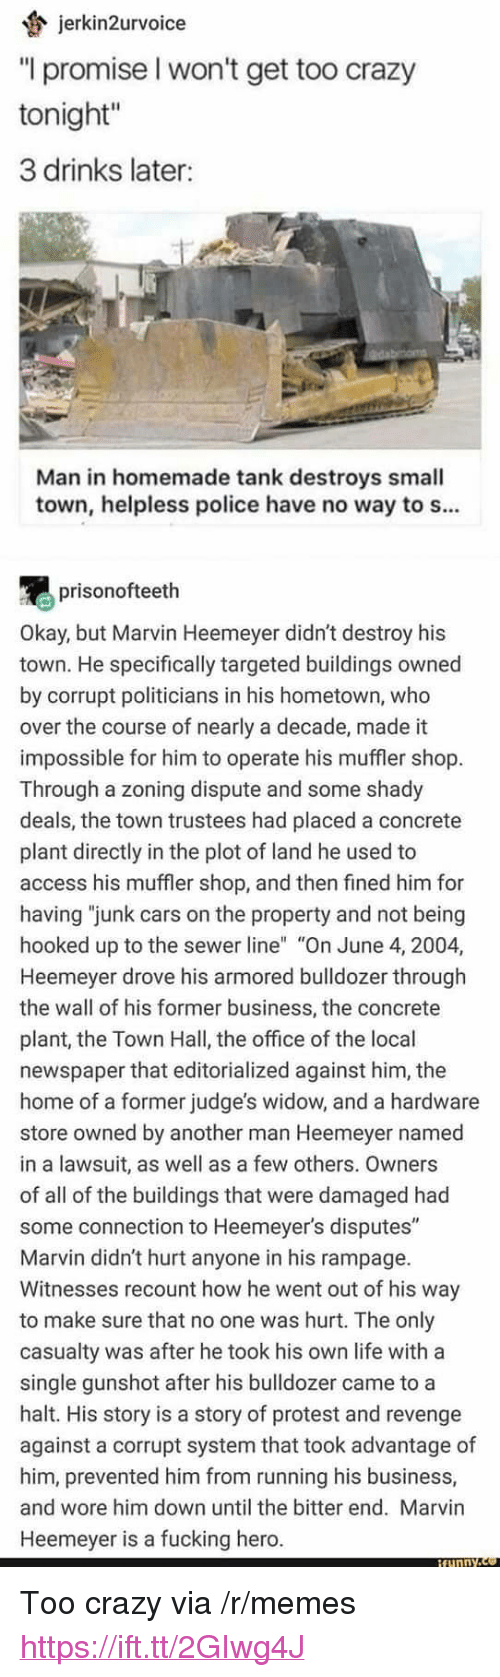 """3 Drinks Later: jerkin2urvoice  """"l promise l won't get too crazy  tonight""""  3 drinks later:  Man in homemade tank destroys small  town, helpless police have no way to s...  prisonofteeth  Okay, but Marvin Heemeyer didn't destroy his  town. He specifically targeted buildings owned  by corrupt politicians in his hometown, who  over the course of nearly a decade, made it  impossible for him to operate his muffler shop  Through a zoning dispute and some shady  deals, the town trustees had placed a concrete  plant directly in the plot of land he used to  access his muffler shop, and then fined him for  having """"junk cars on the property and not being  hooked up to the sewer line"""" """"On June 4, 2004,  Heemeyer drove his armored bulldozer through  the wall of his former business, the concrete  plant, the Town Hall, the office of the local  newspaper that editorialized against him, the  home of a former judge's widow, and a hardware  store owned by another man Heemeyer named  in a lawsuit, as well as a few others. Owners  of all of the buildings that were damaged had  some connection to Heemeyer's disputes""""  Marvin didn't hurt anyone in his rampage.  Witnesses recount how he went out of his way  to make sure that no one was hurt. The only  casualty was after he took his own life with a  single gunshot after his bulldozer came to a  halt. His story is a story of protest and revenge  against a corrupt system that took advantage of  him, prevented him from running his business,  and wore him down until the bitter end. Marvin  Heemeyer is a fucking hero. <p>Too crazy via /r/memes <a href=""""https://ift.tt/2GIwg4J"""">https://ift.tt/2GIwg4J</a></p>"""